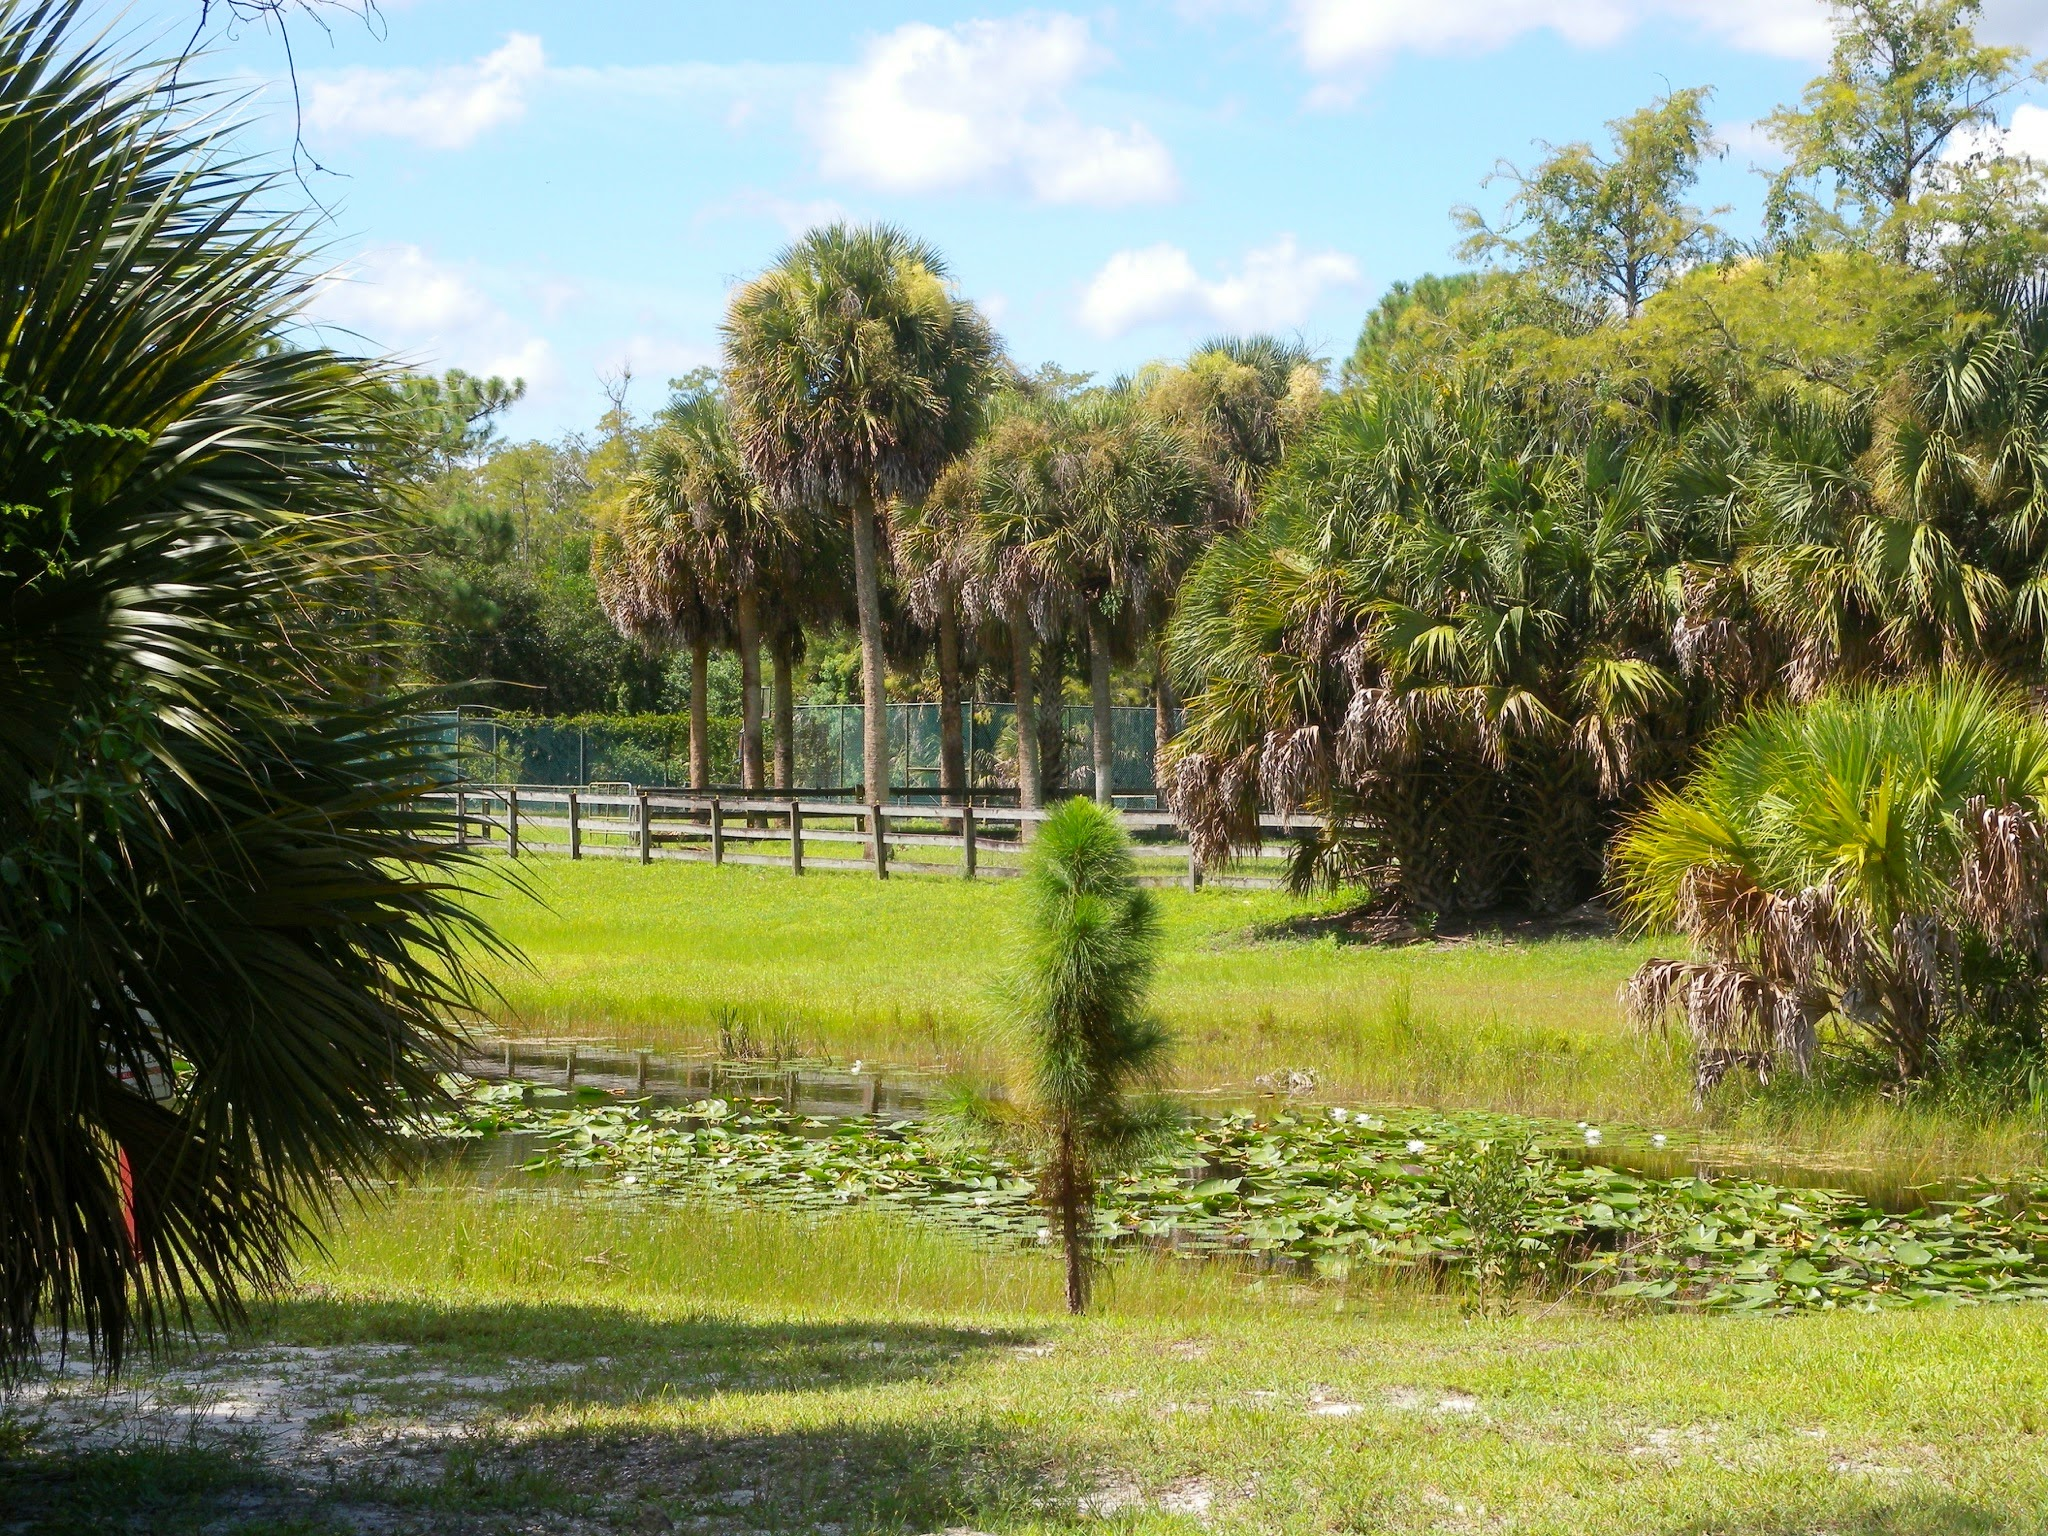 5 Acre Lots For sale in Loxahatchee FL